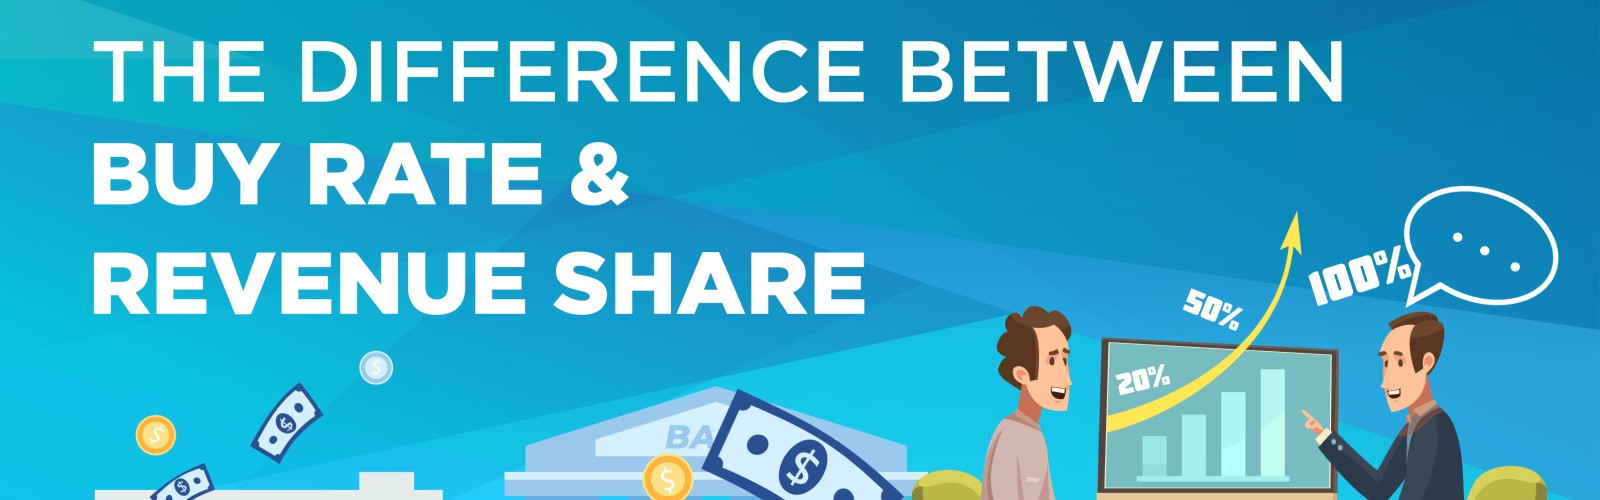 The Difference Between Buy Rate and Revenue Share-Infographic-Banner